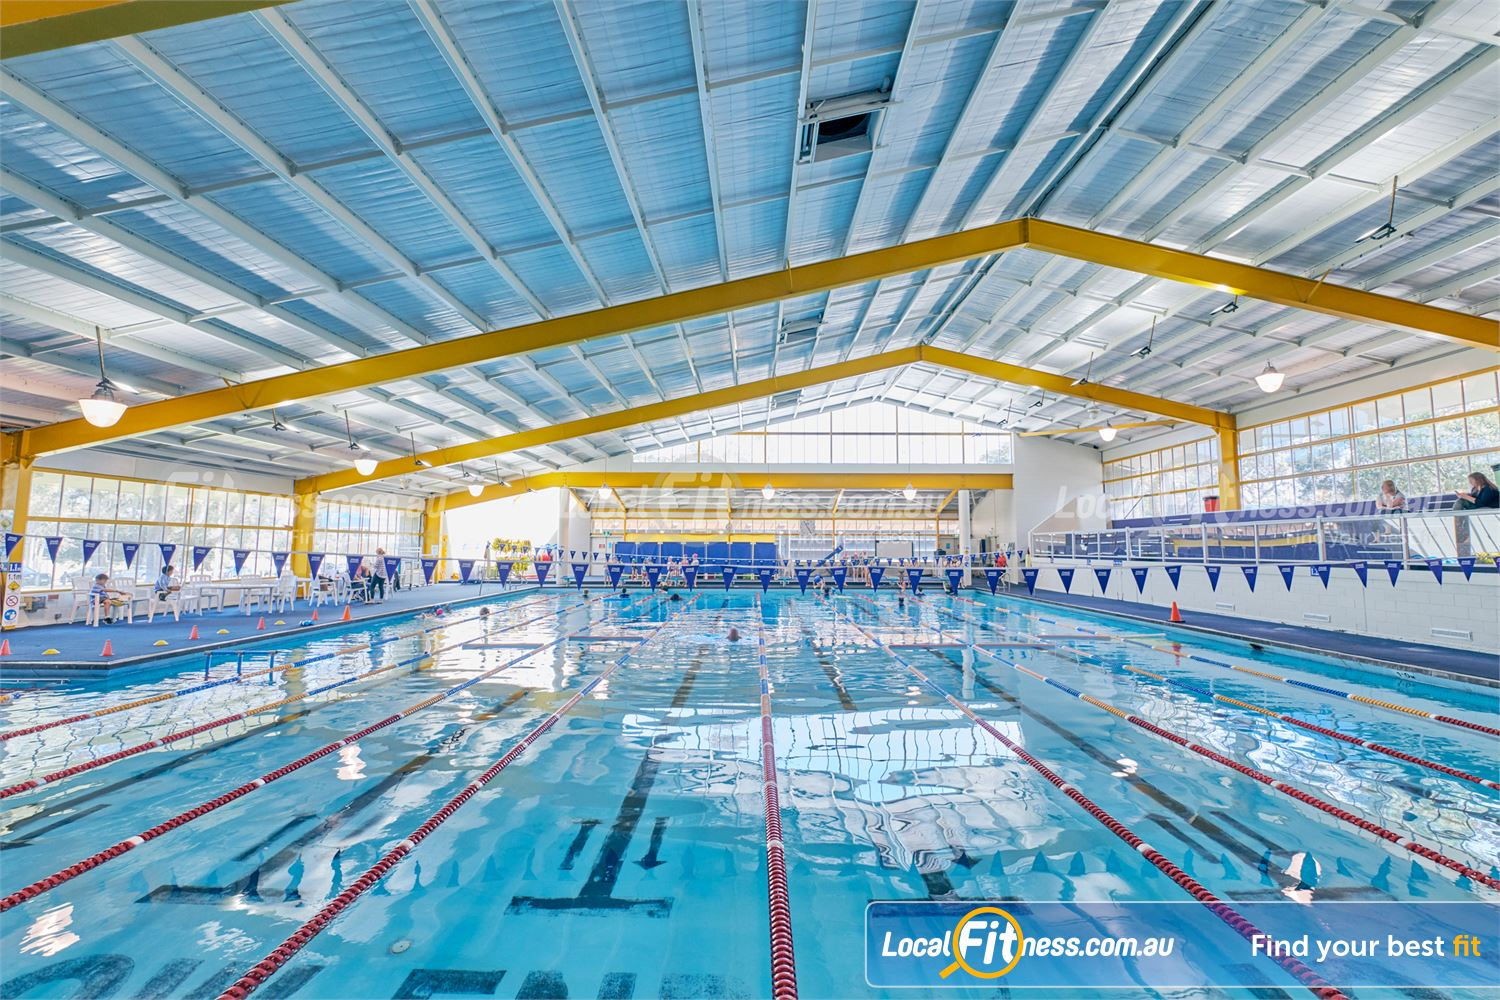 goodlife health clubs gym near mentone enjoy swimming access in our sandringham swimming pool